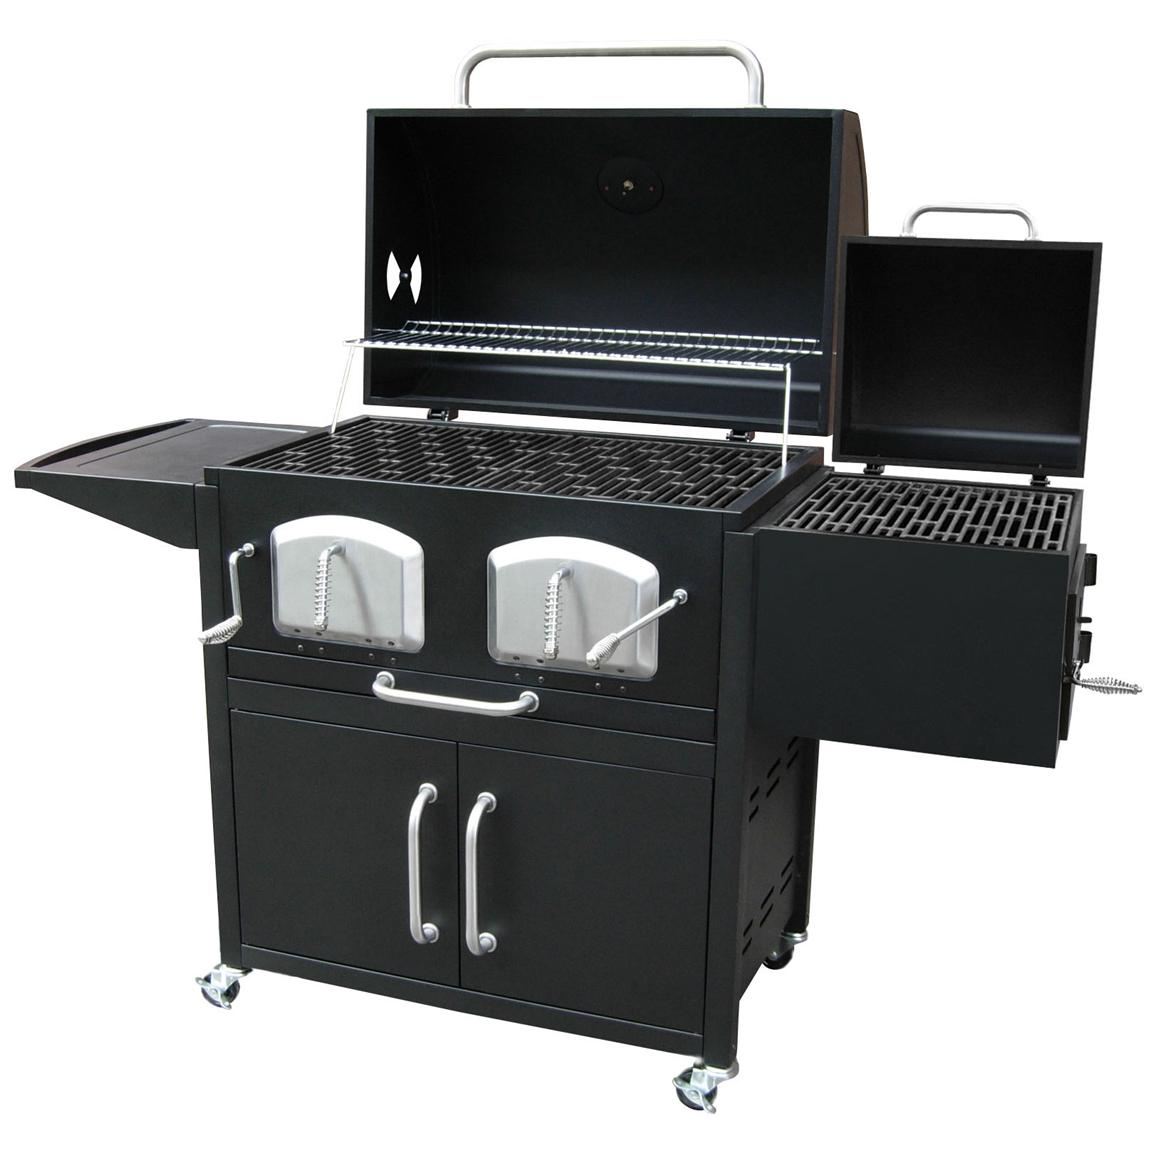 landmann bravo premium charcoal grill with offset smoker box 588493 grills smokers at. Black Bedroom Furniture Sets. Home Design Ideas